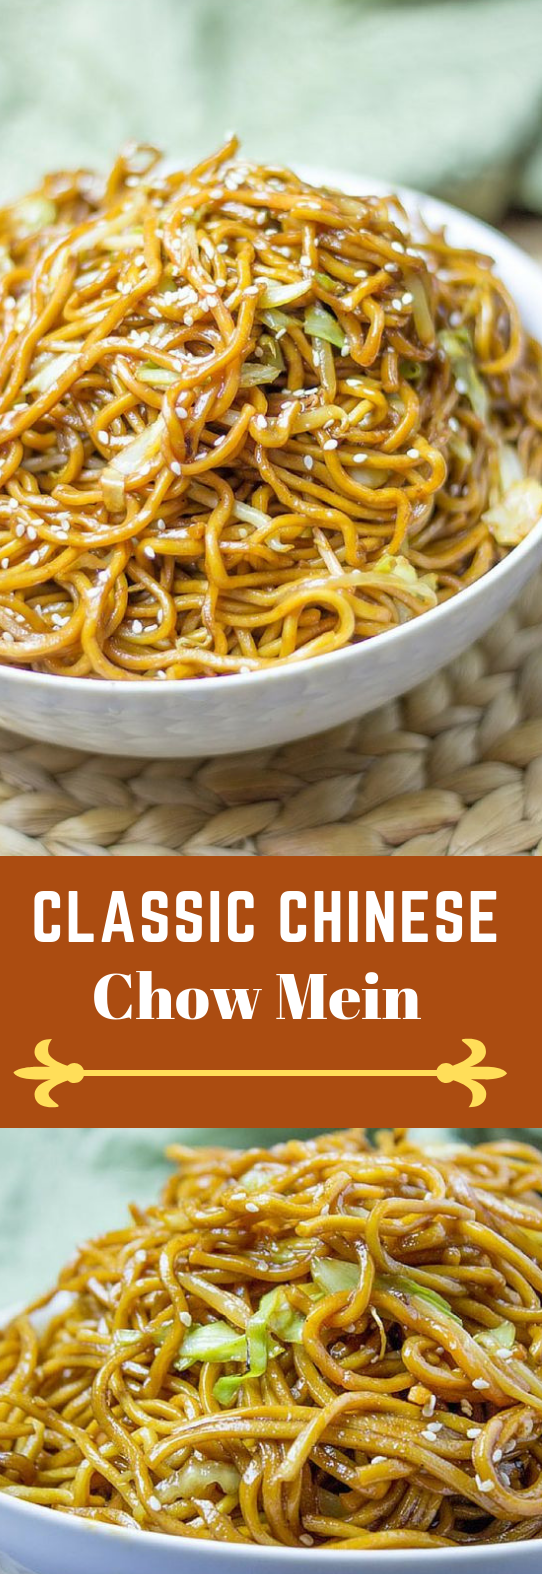 CLASSIC CHINESE CHOW MEIN #dinner #eating